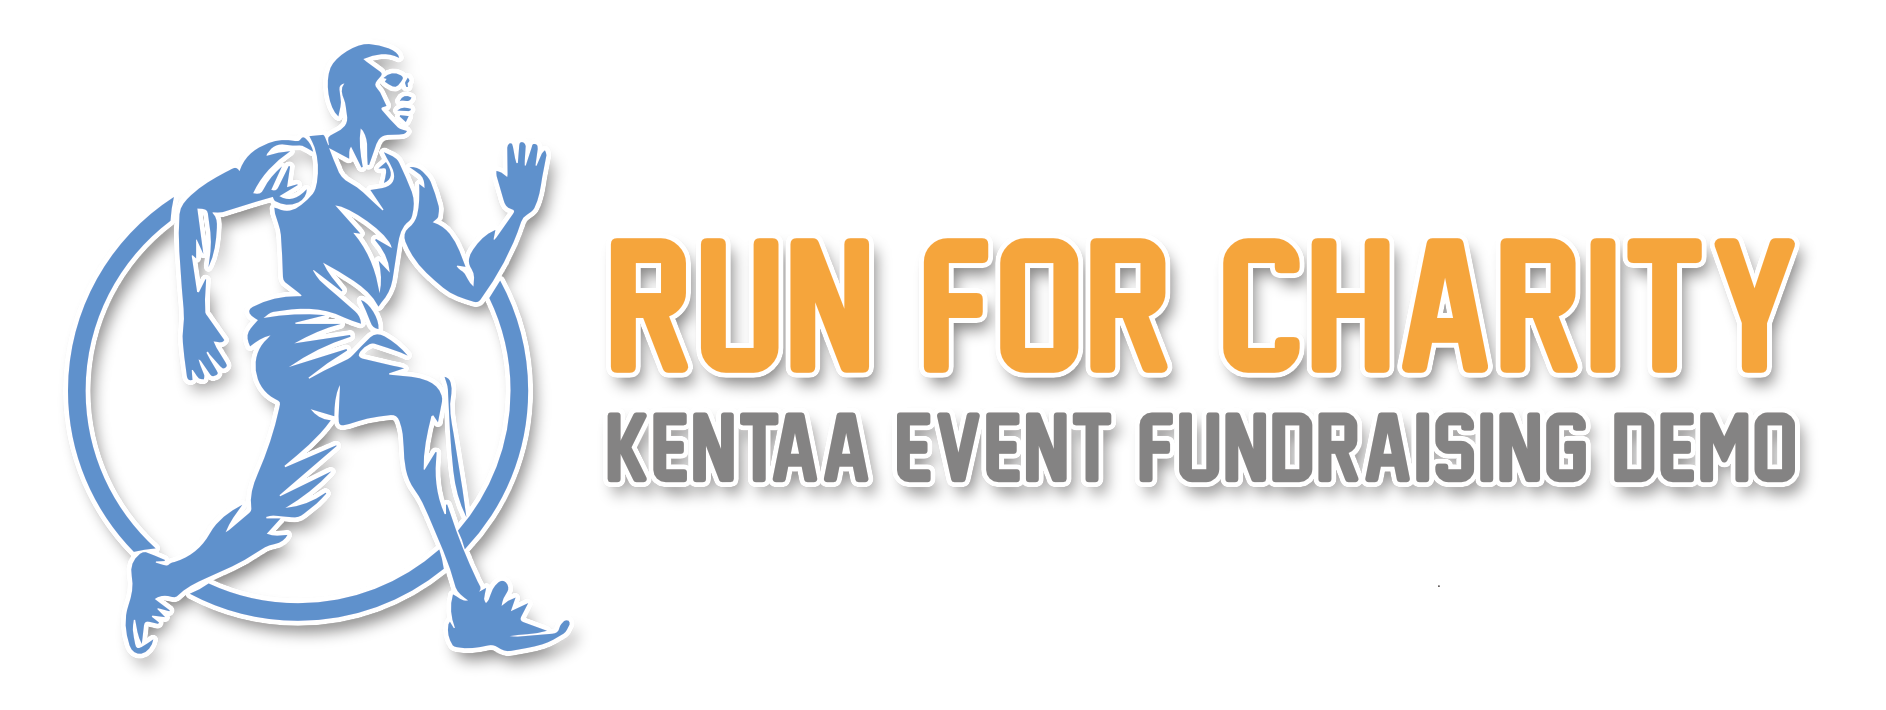 Kentaa Event Fundraising Demo